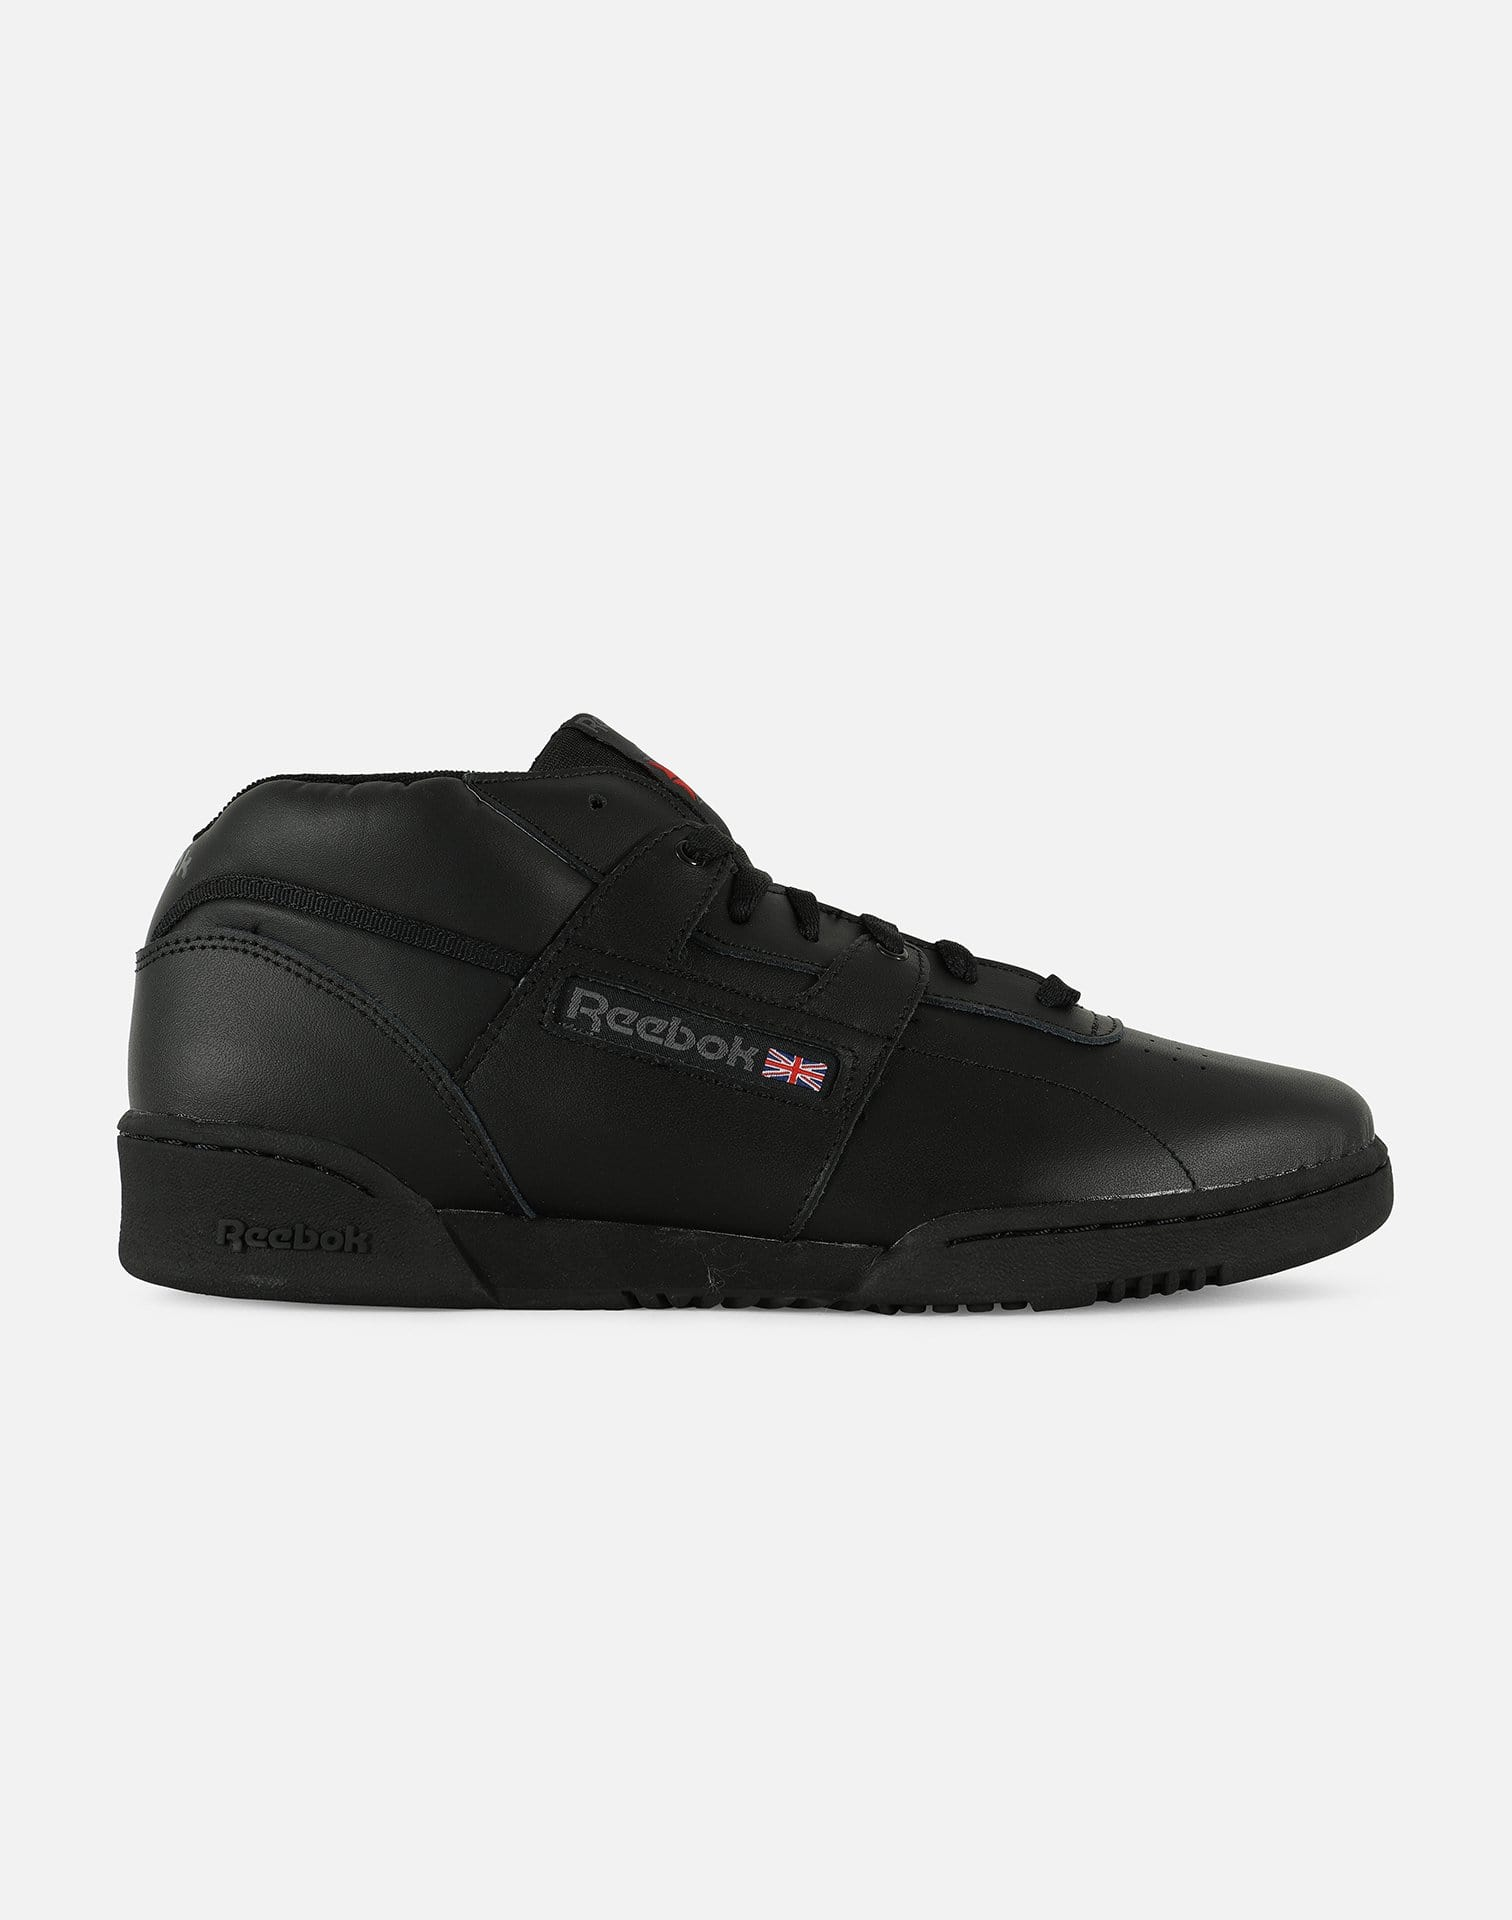 Reebok Men's Workout Mid OG